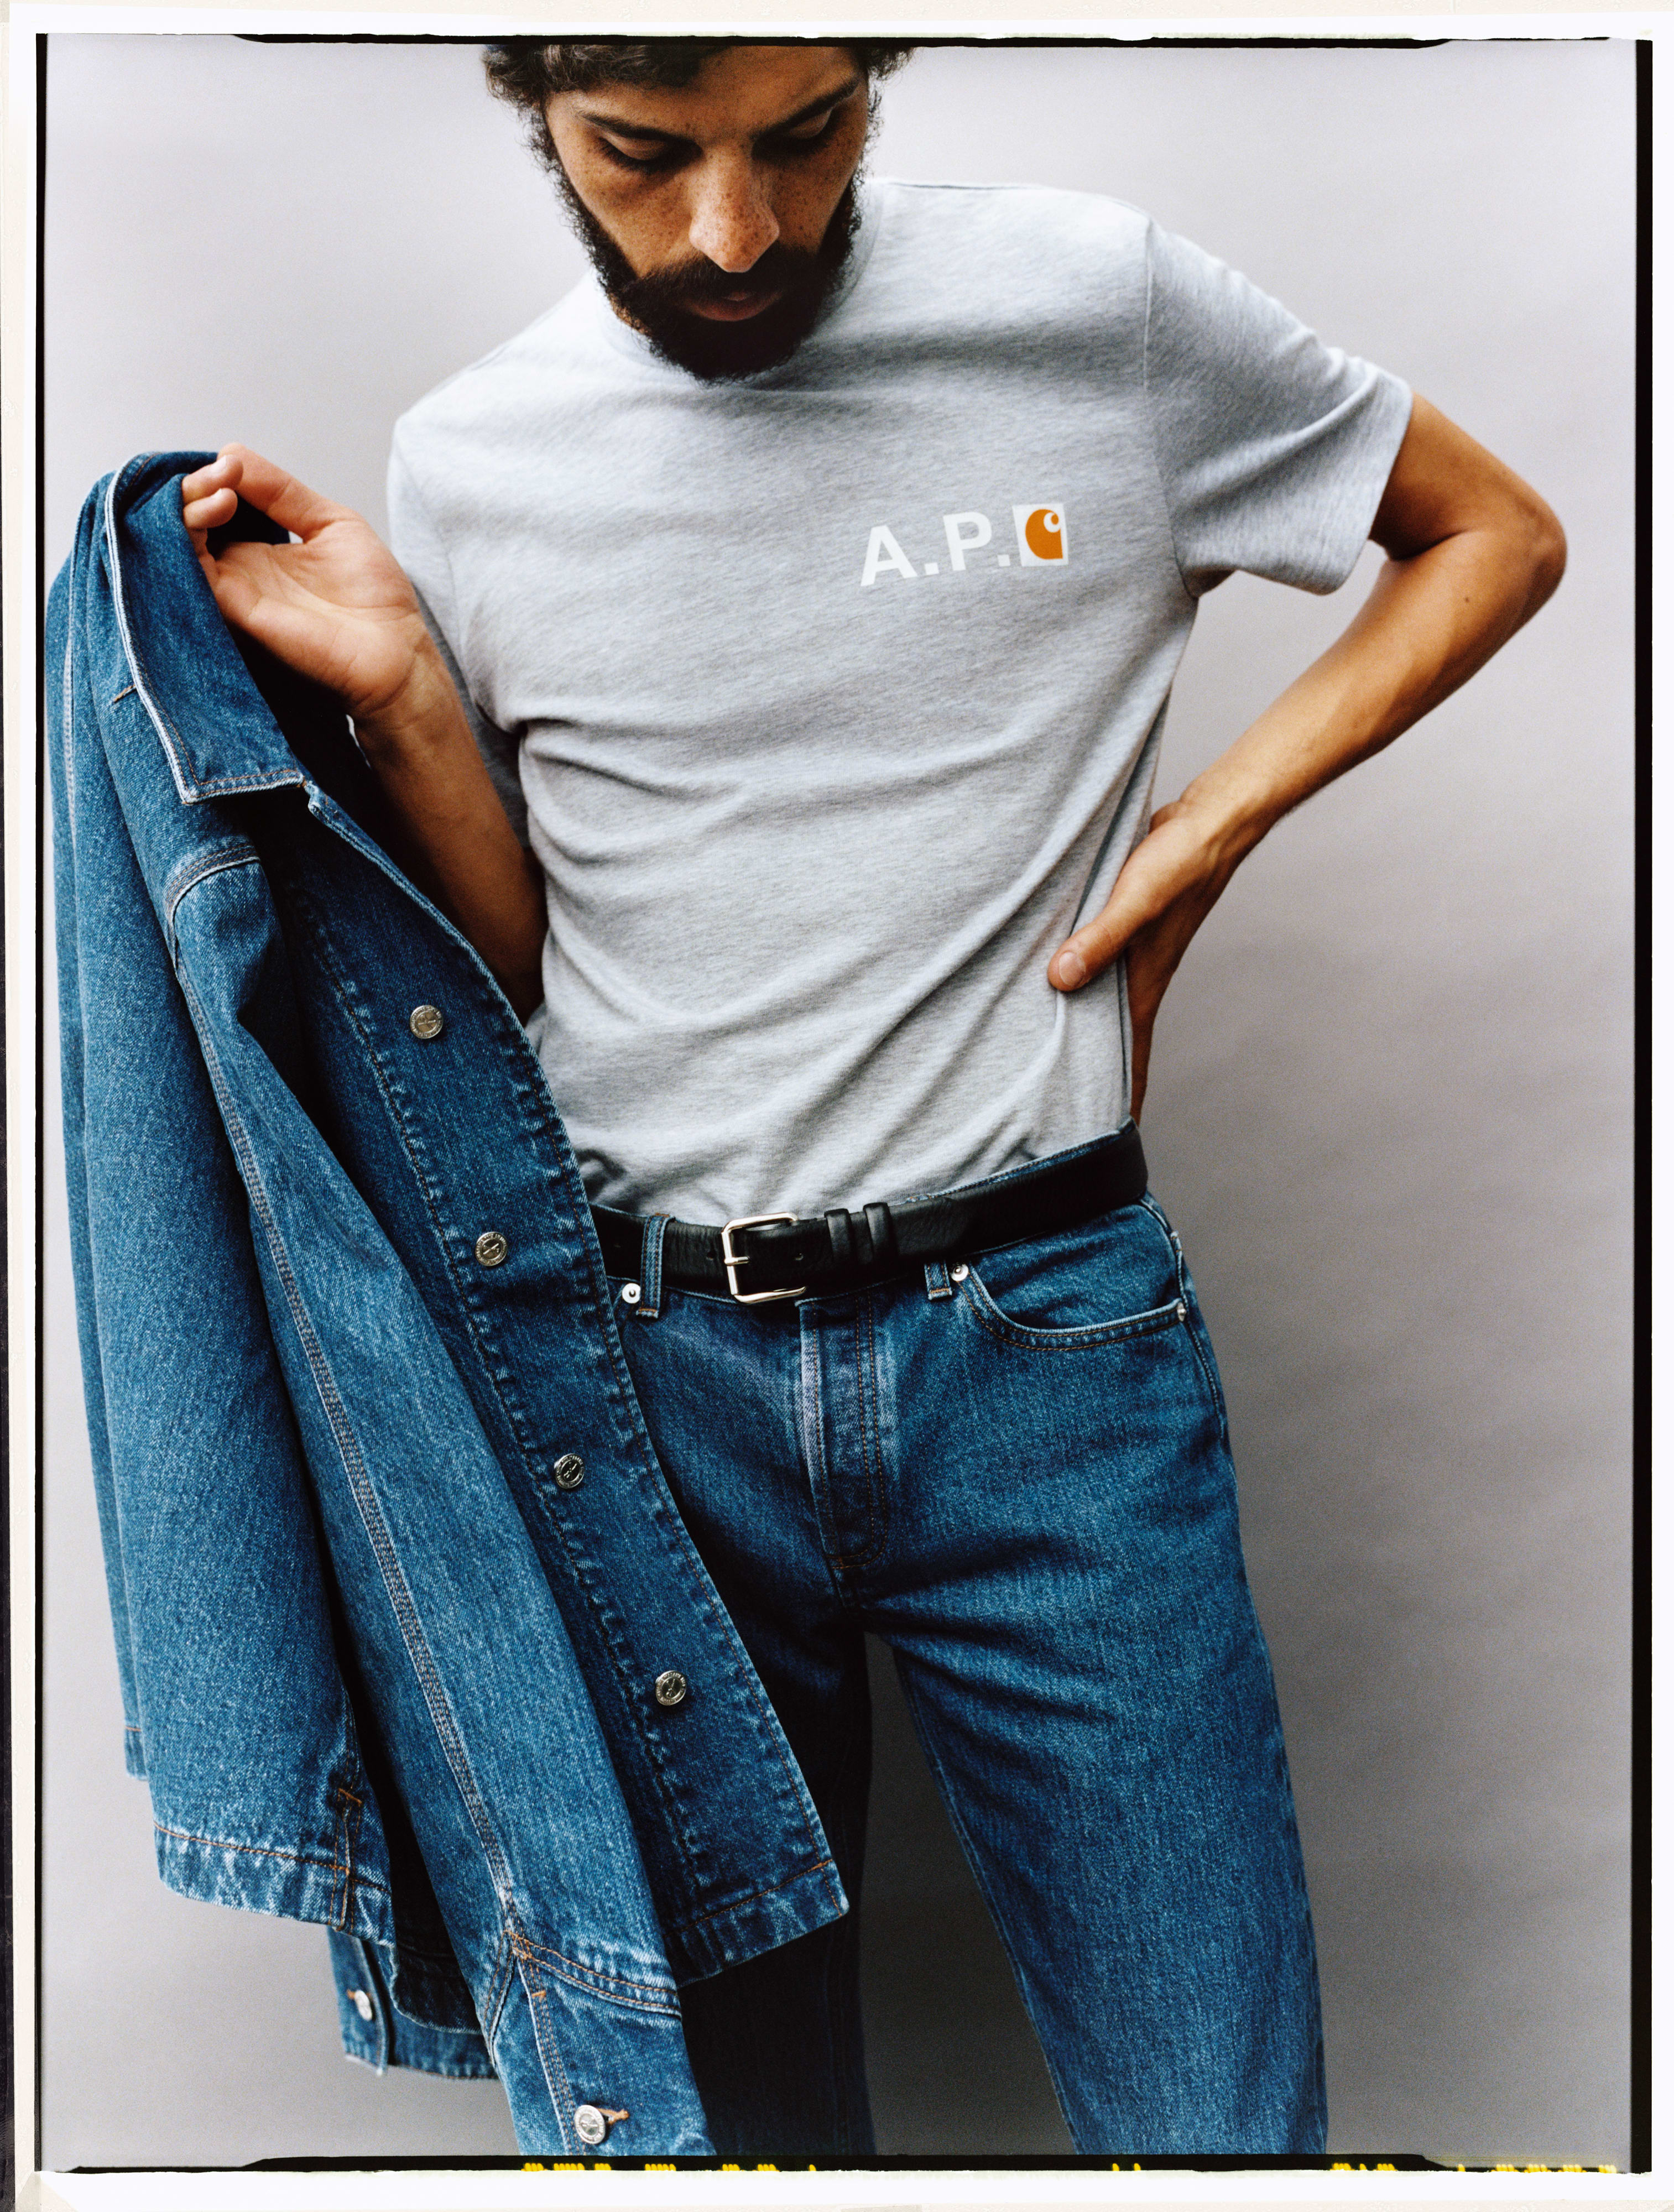 Complex Best Style Releases APC x Carhartt